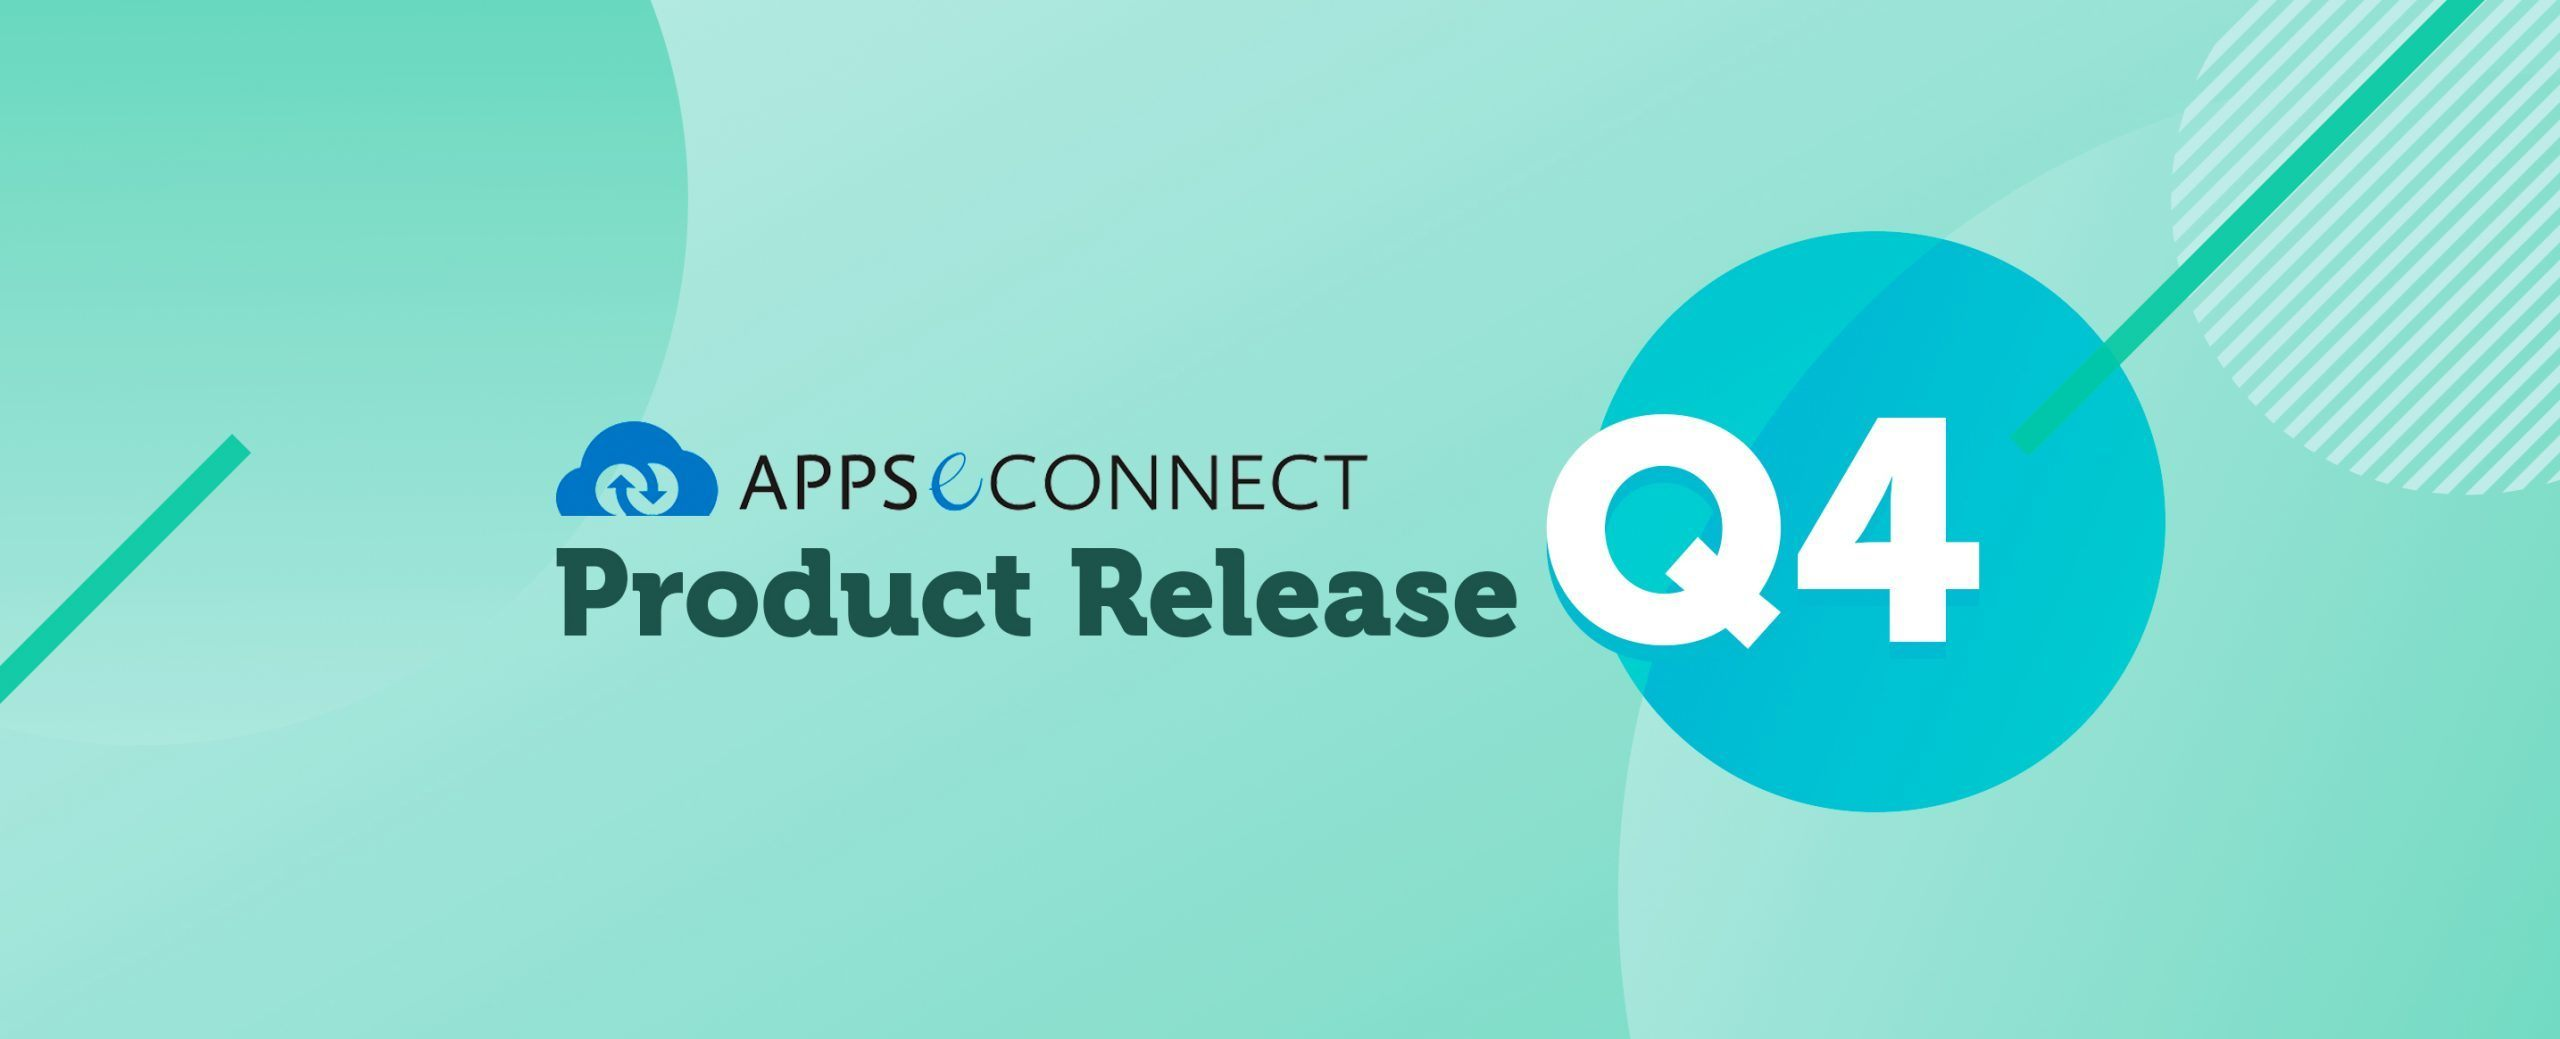 APPSeCONNECT Product Release-Q4